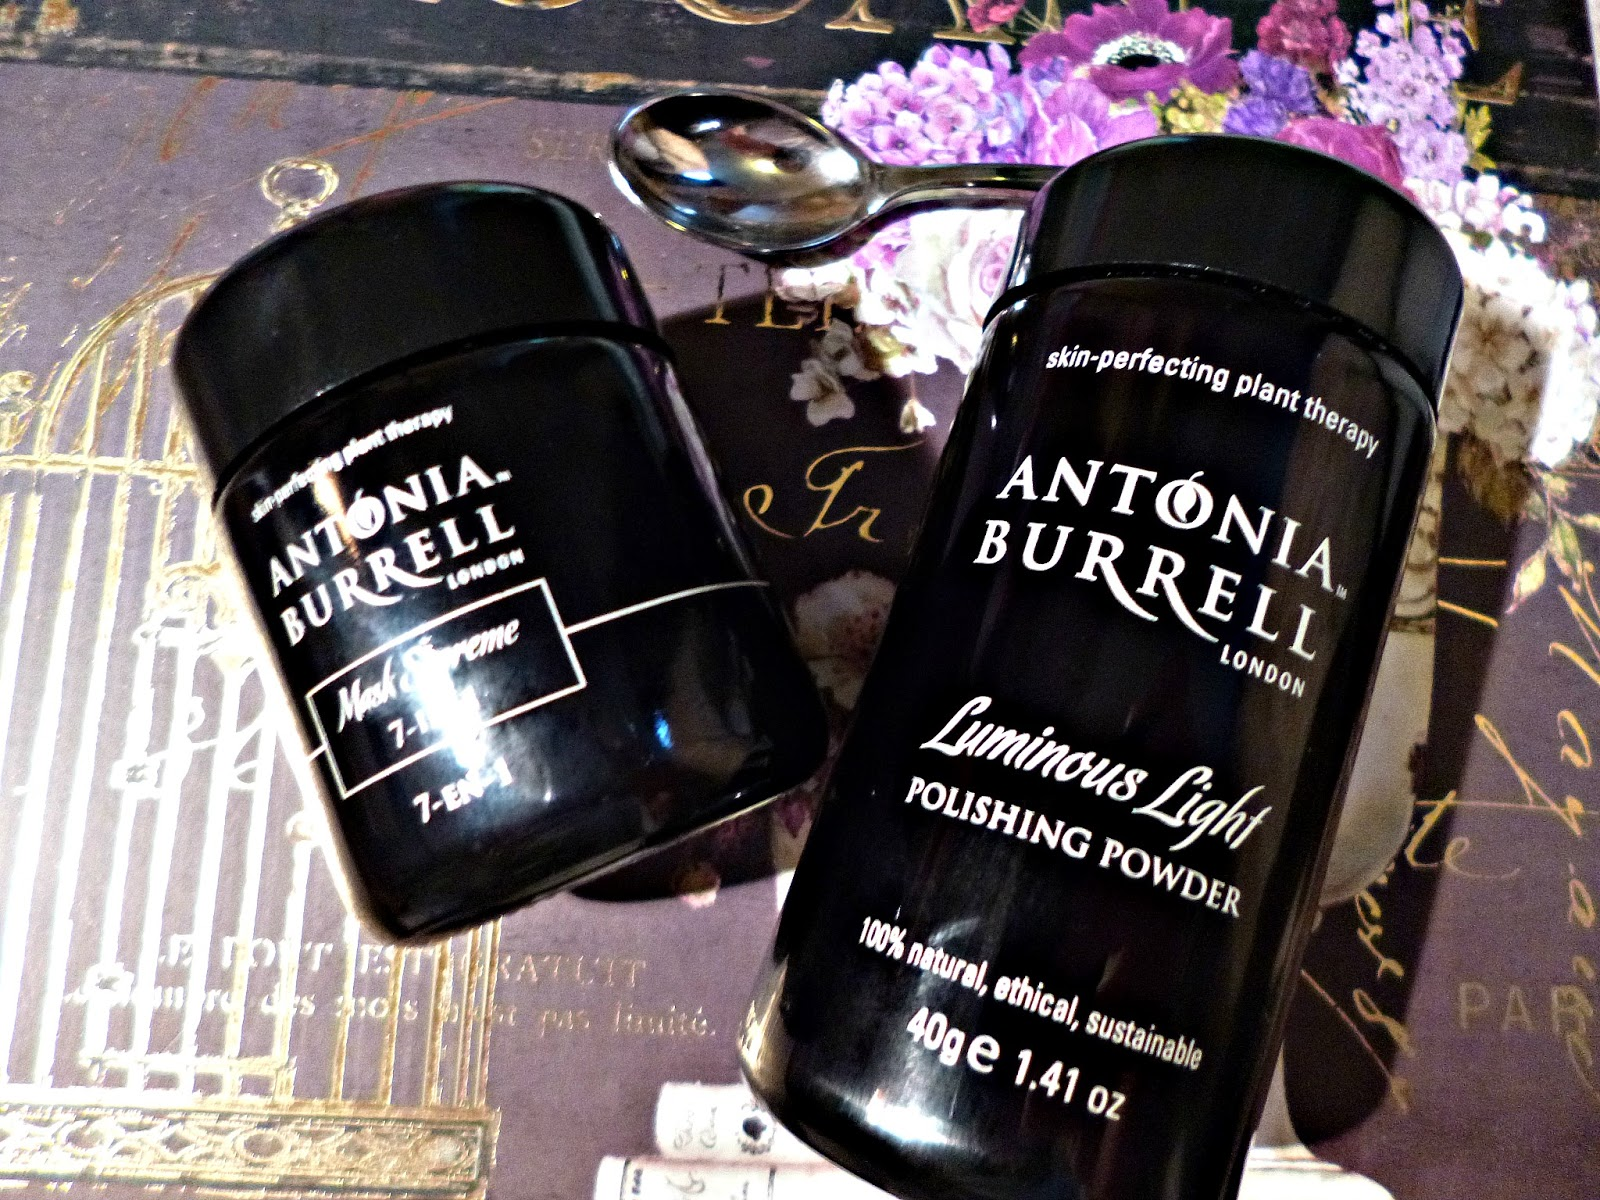 Antonia Burrell Mask Supreme 7-in-1 and Luminous Light polishing powder review